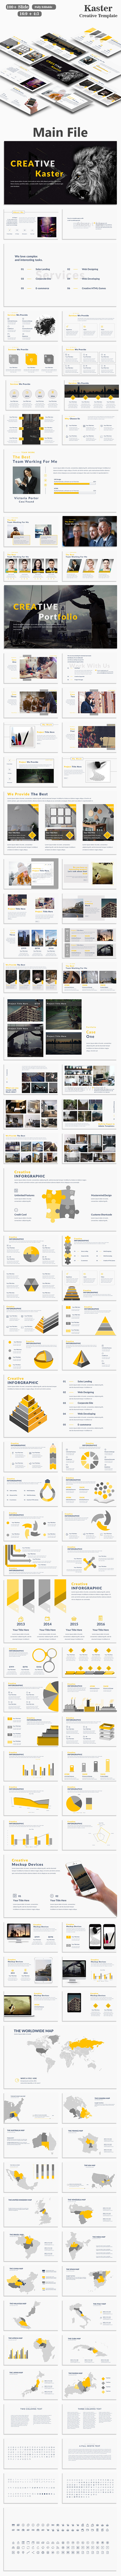 Kaster Creative PowerPoint Template - Creative PowerPoint Templates